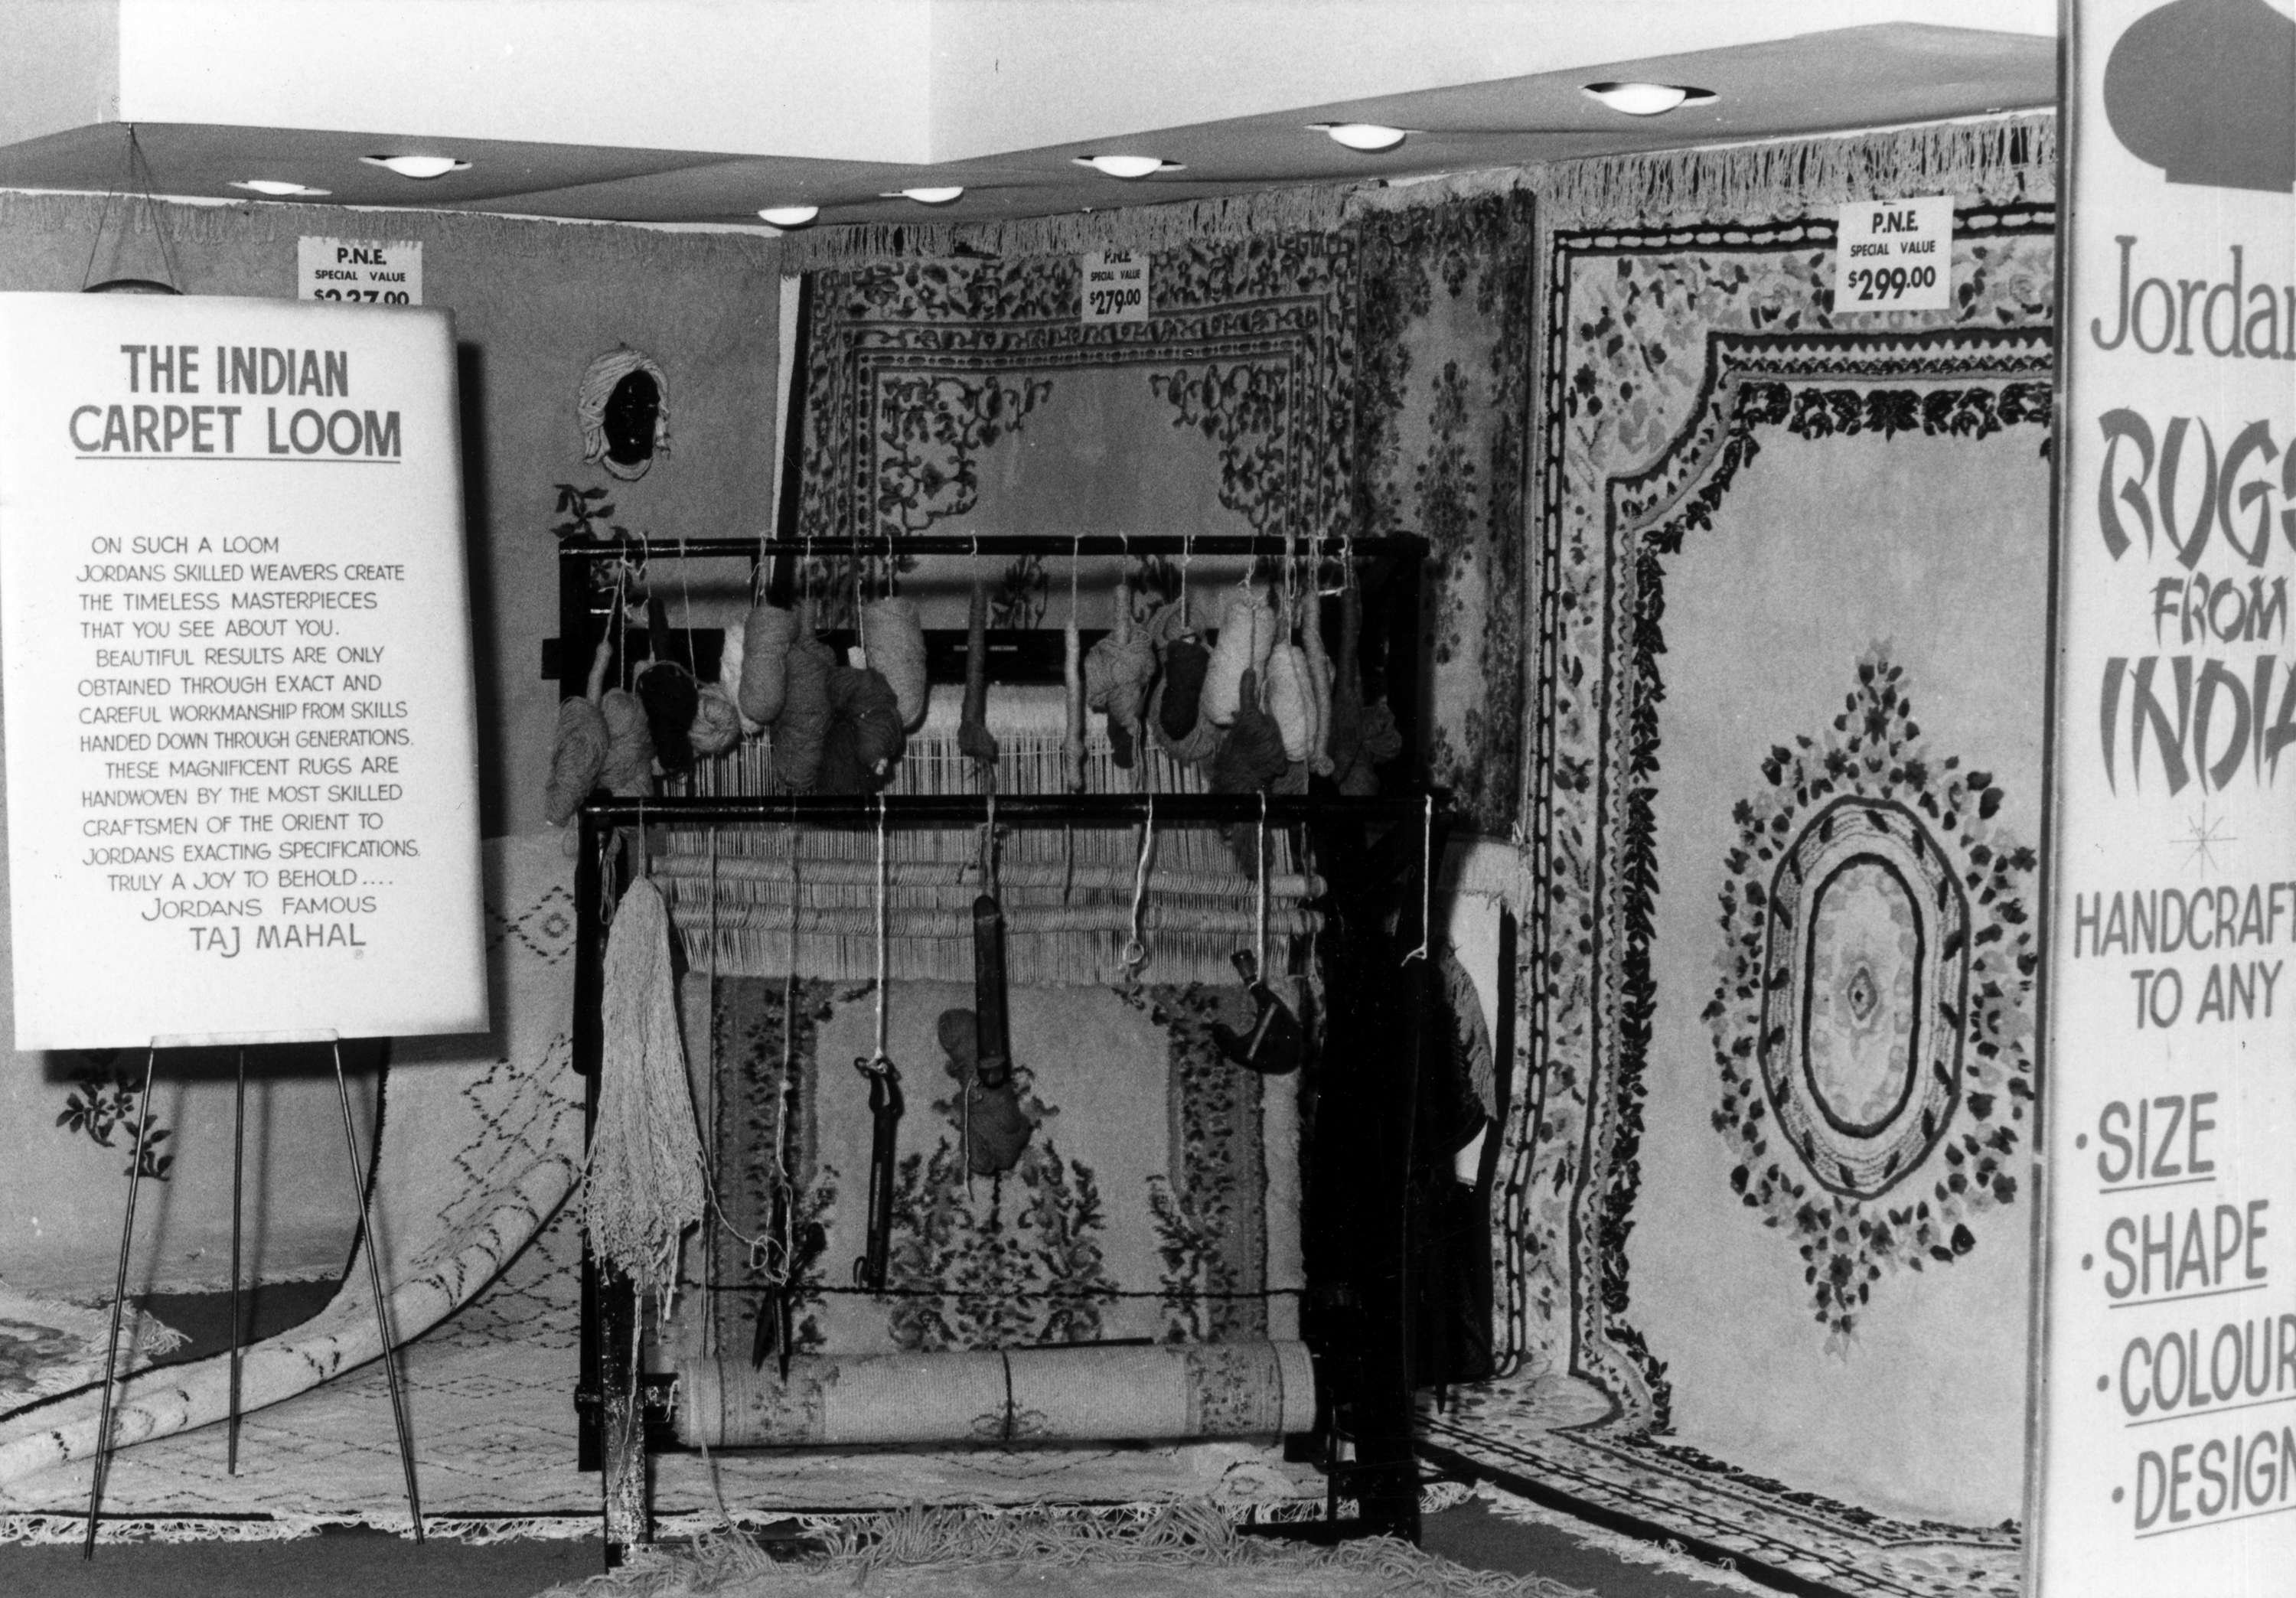 Jordans Display Of Rugs From India City Of Vancouver